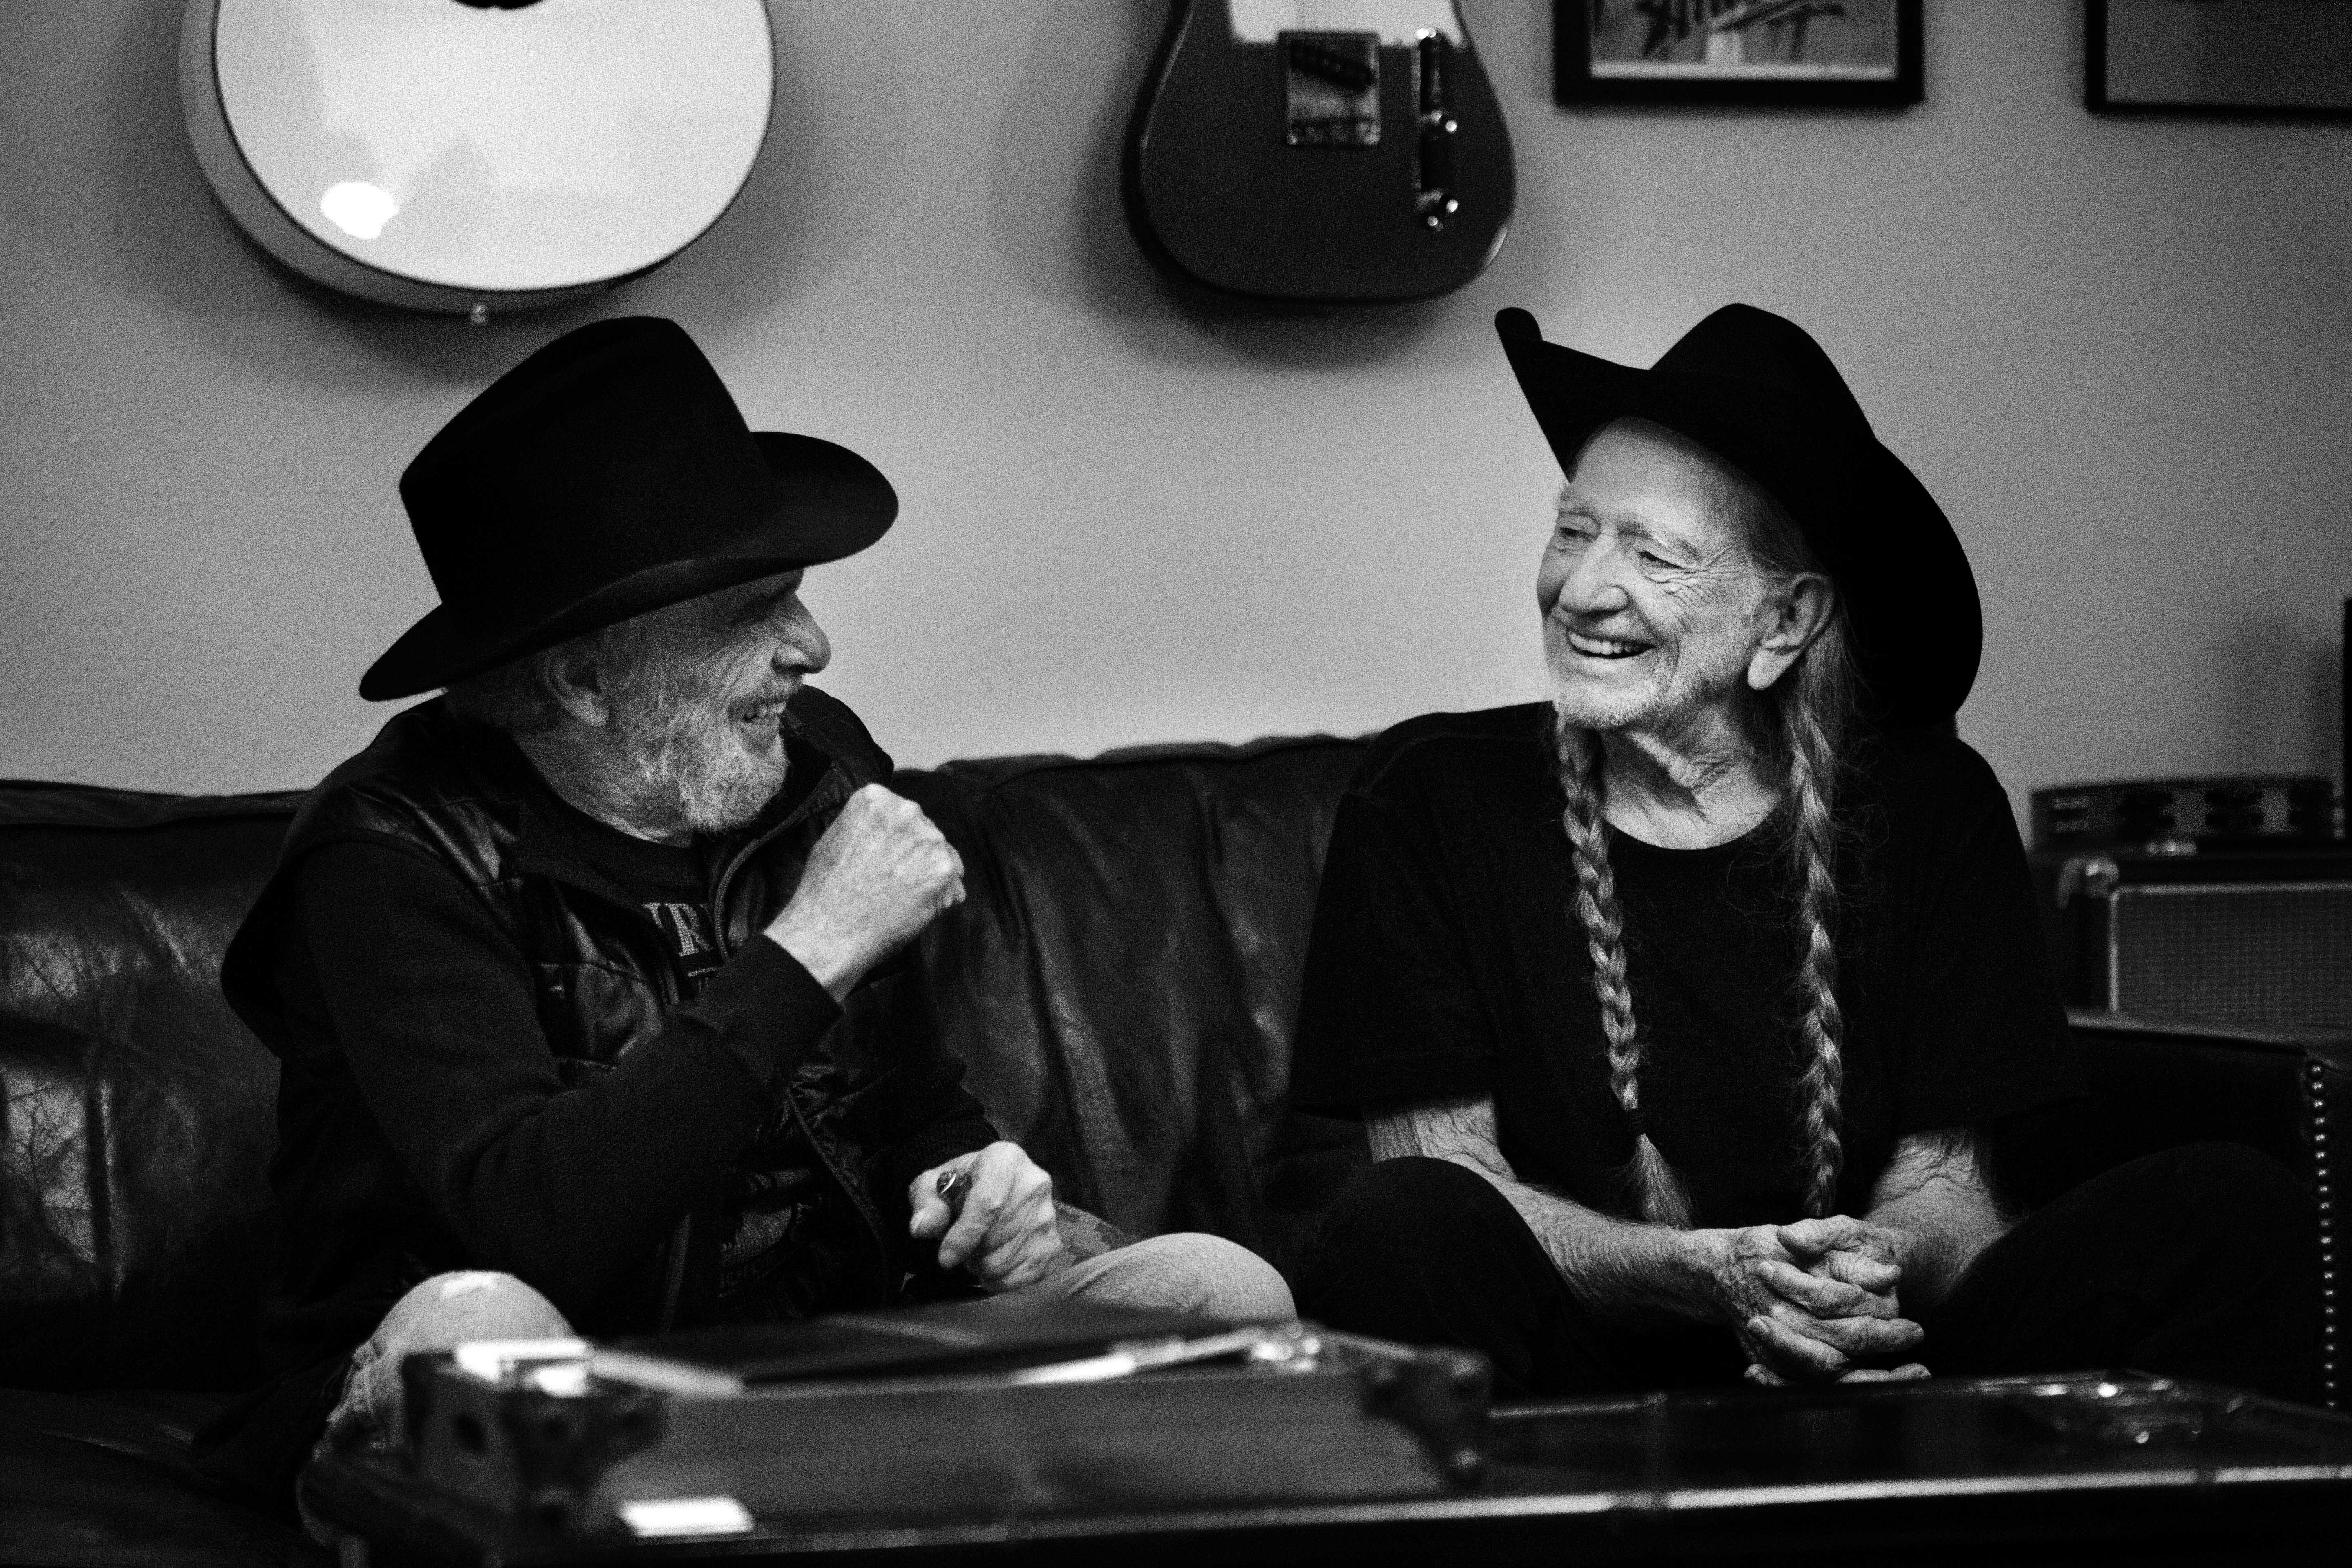 Willie Nelson and Merle Haggard: Pancho and Lefty Ride Again